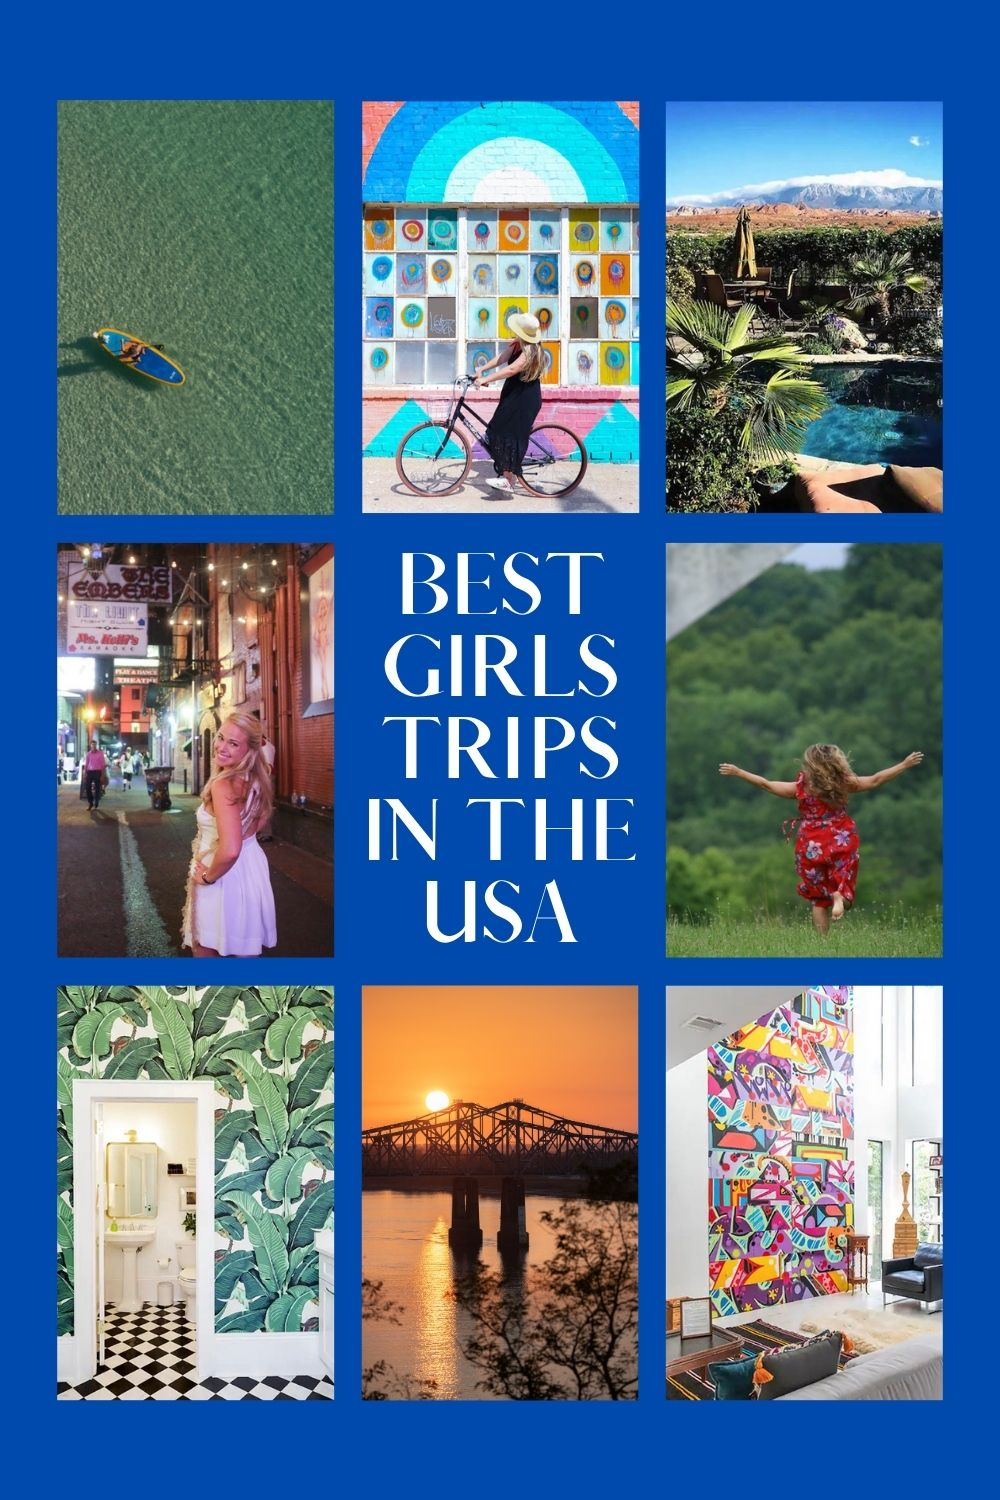 The Best Girls' Trips in the USA